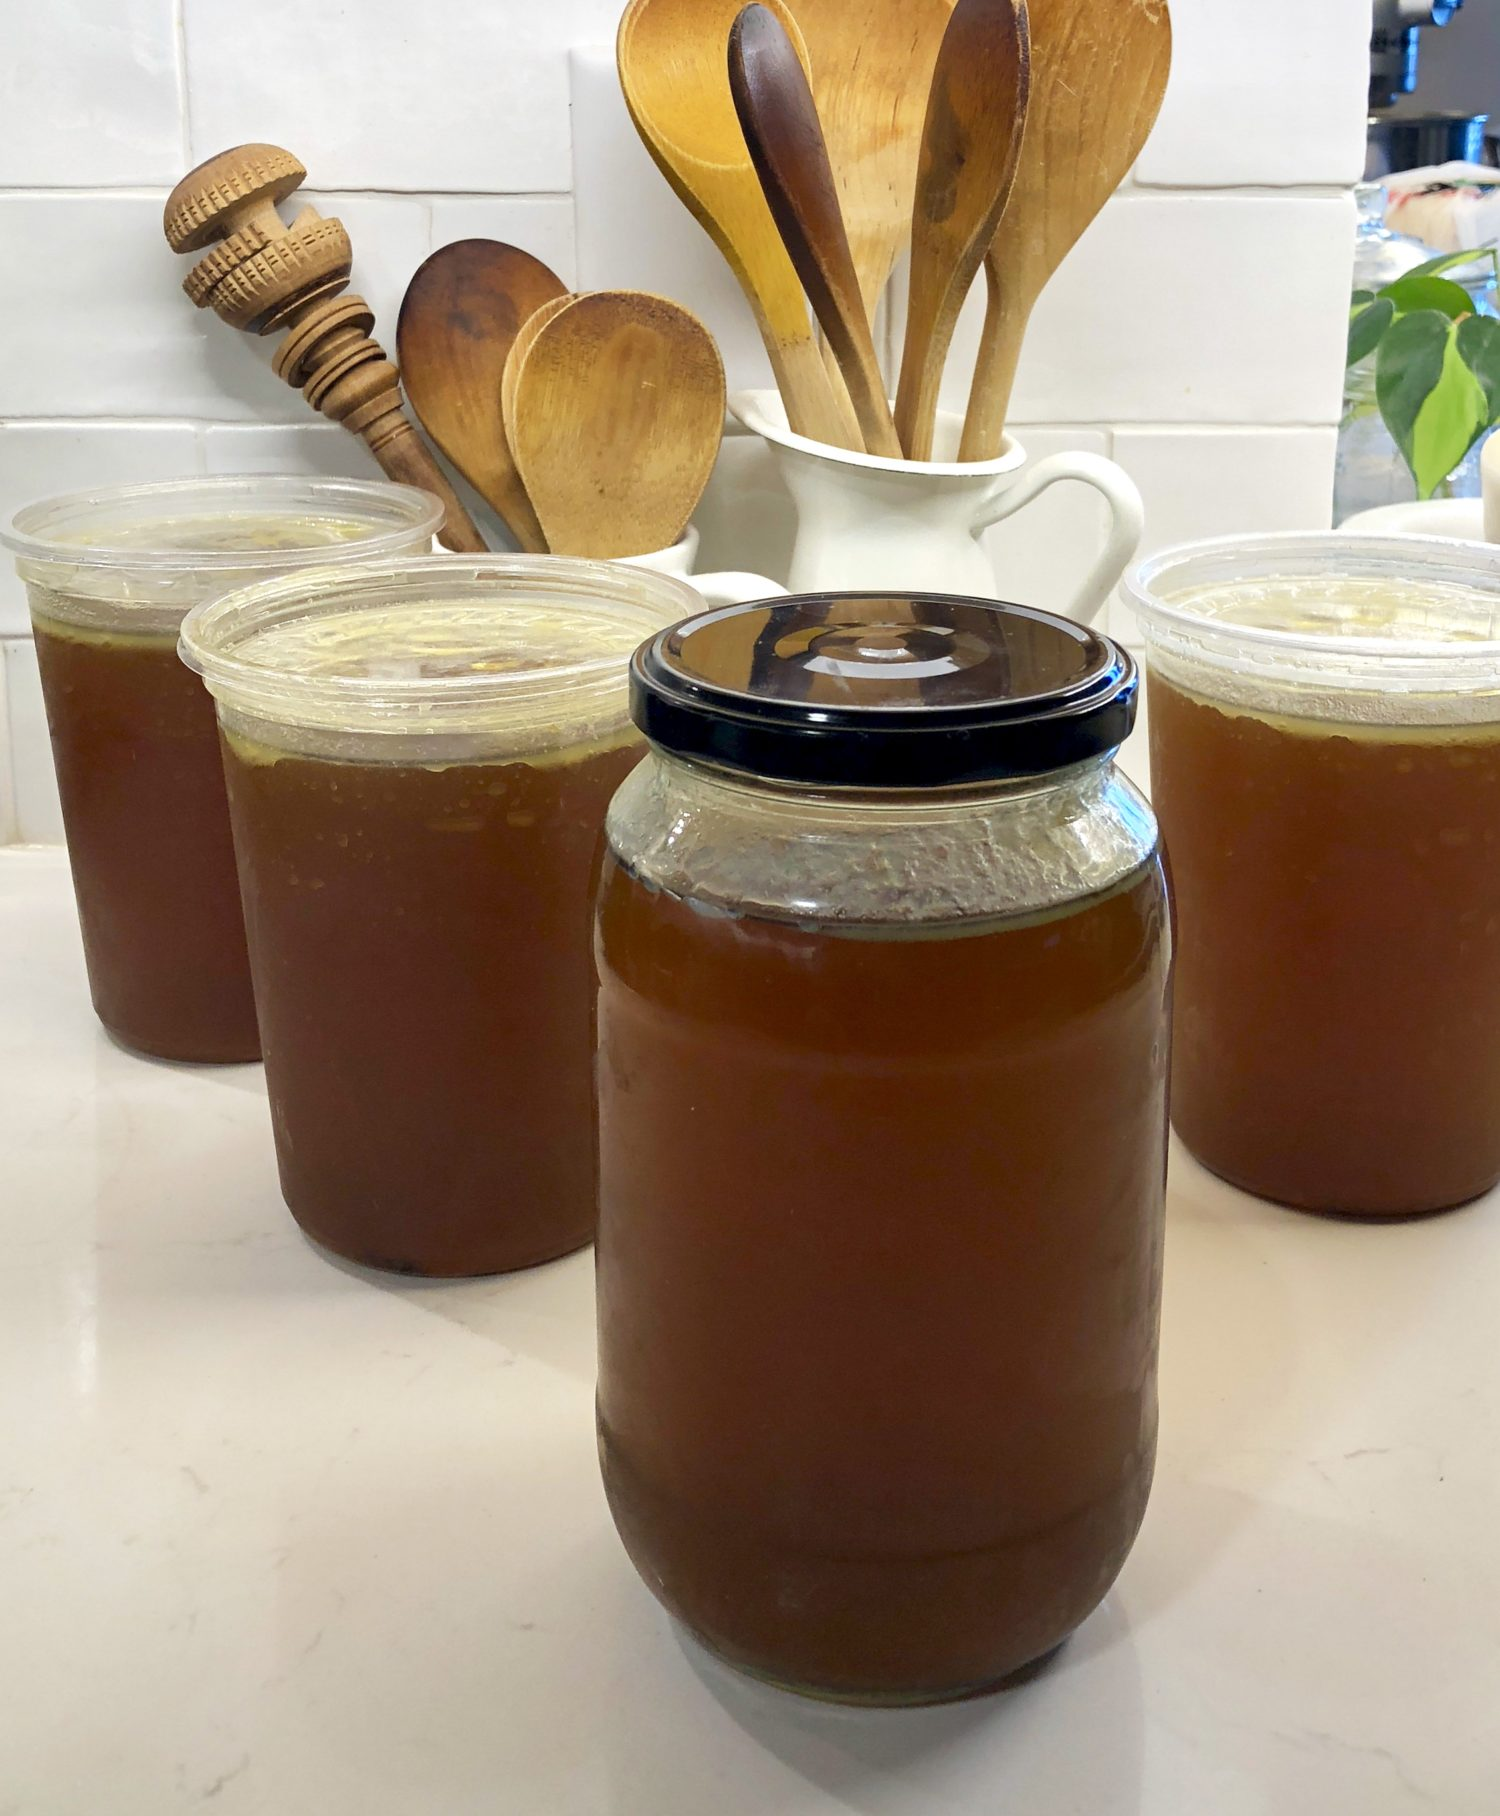 Rich and flavourful bone broth or stock